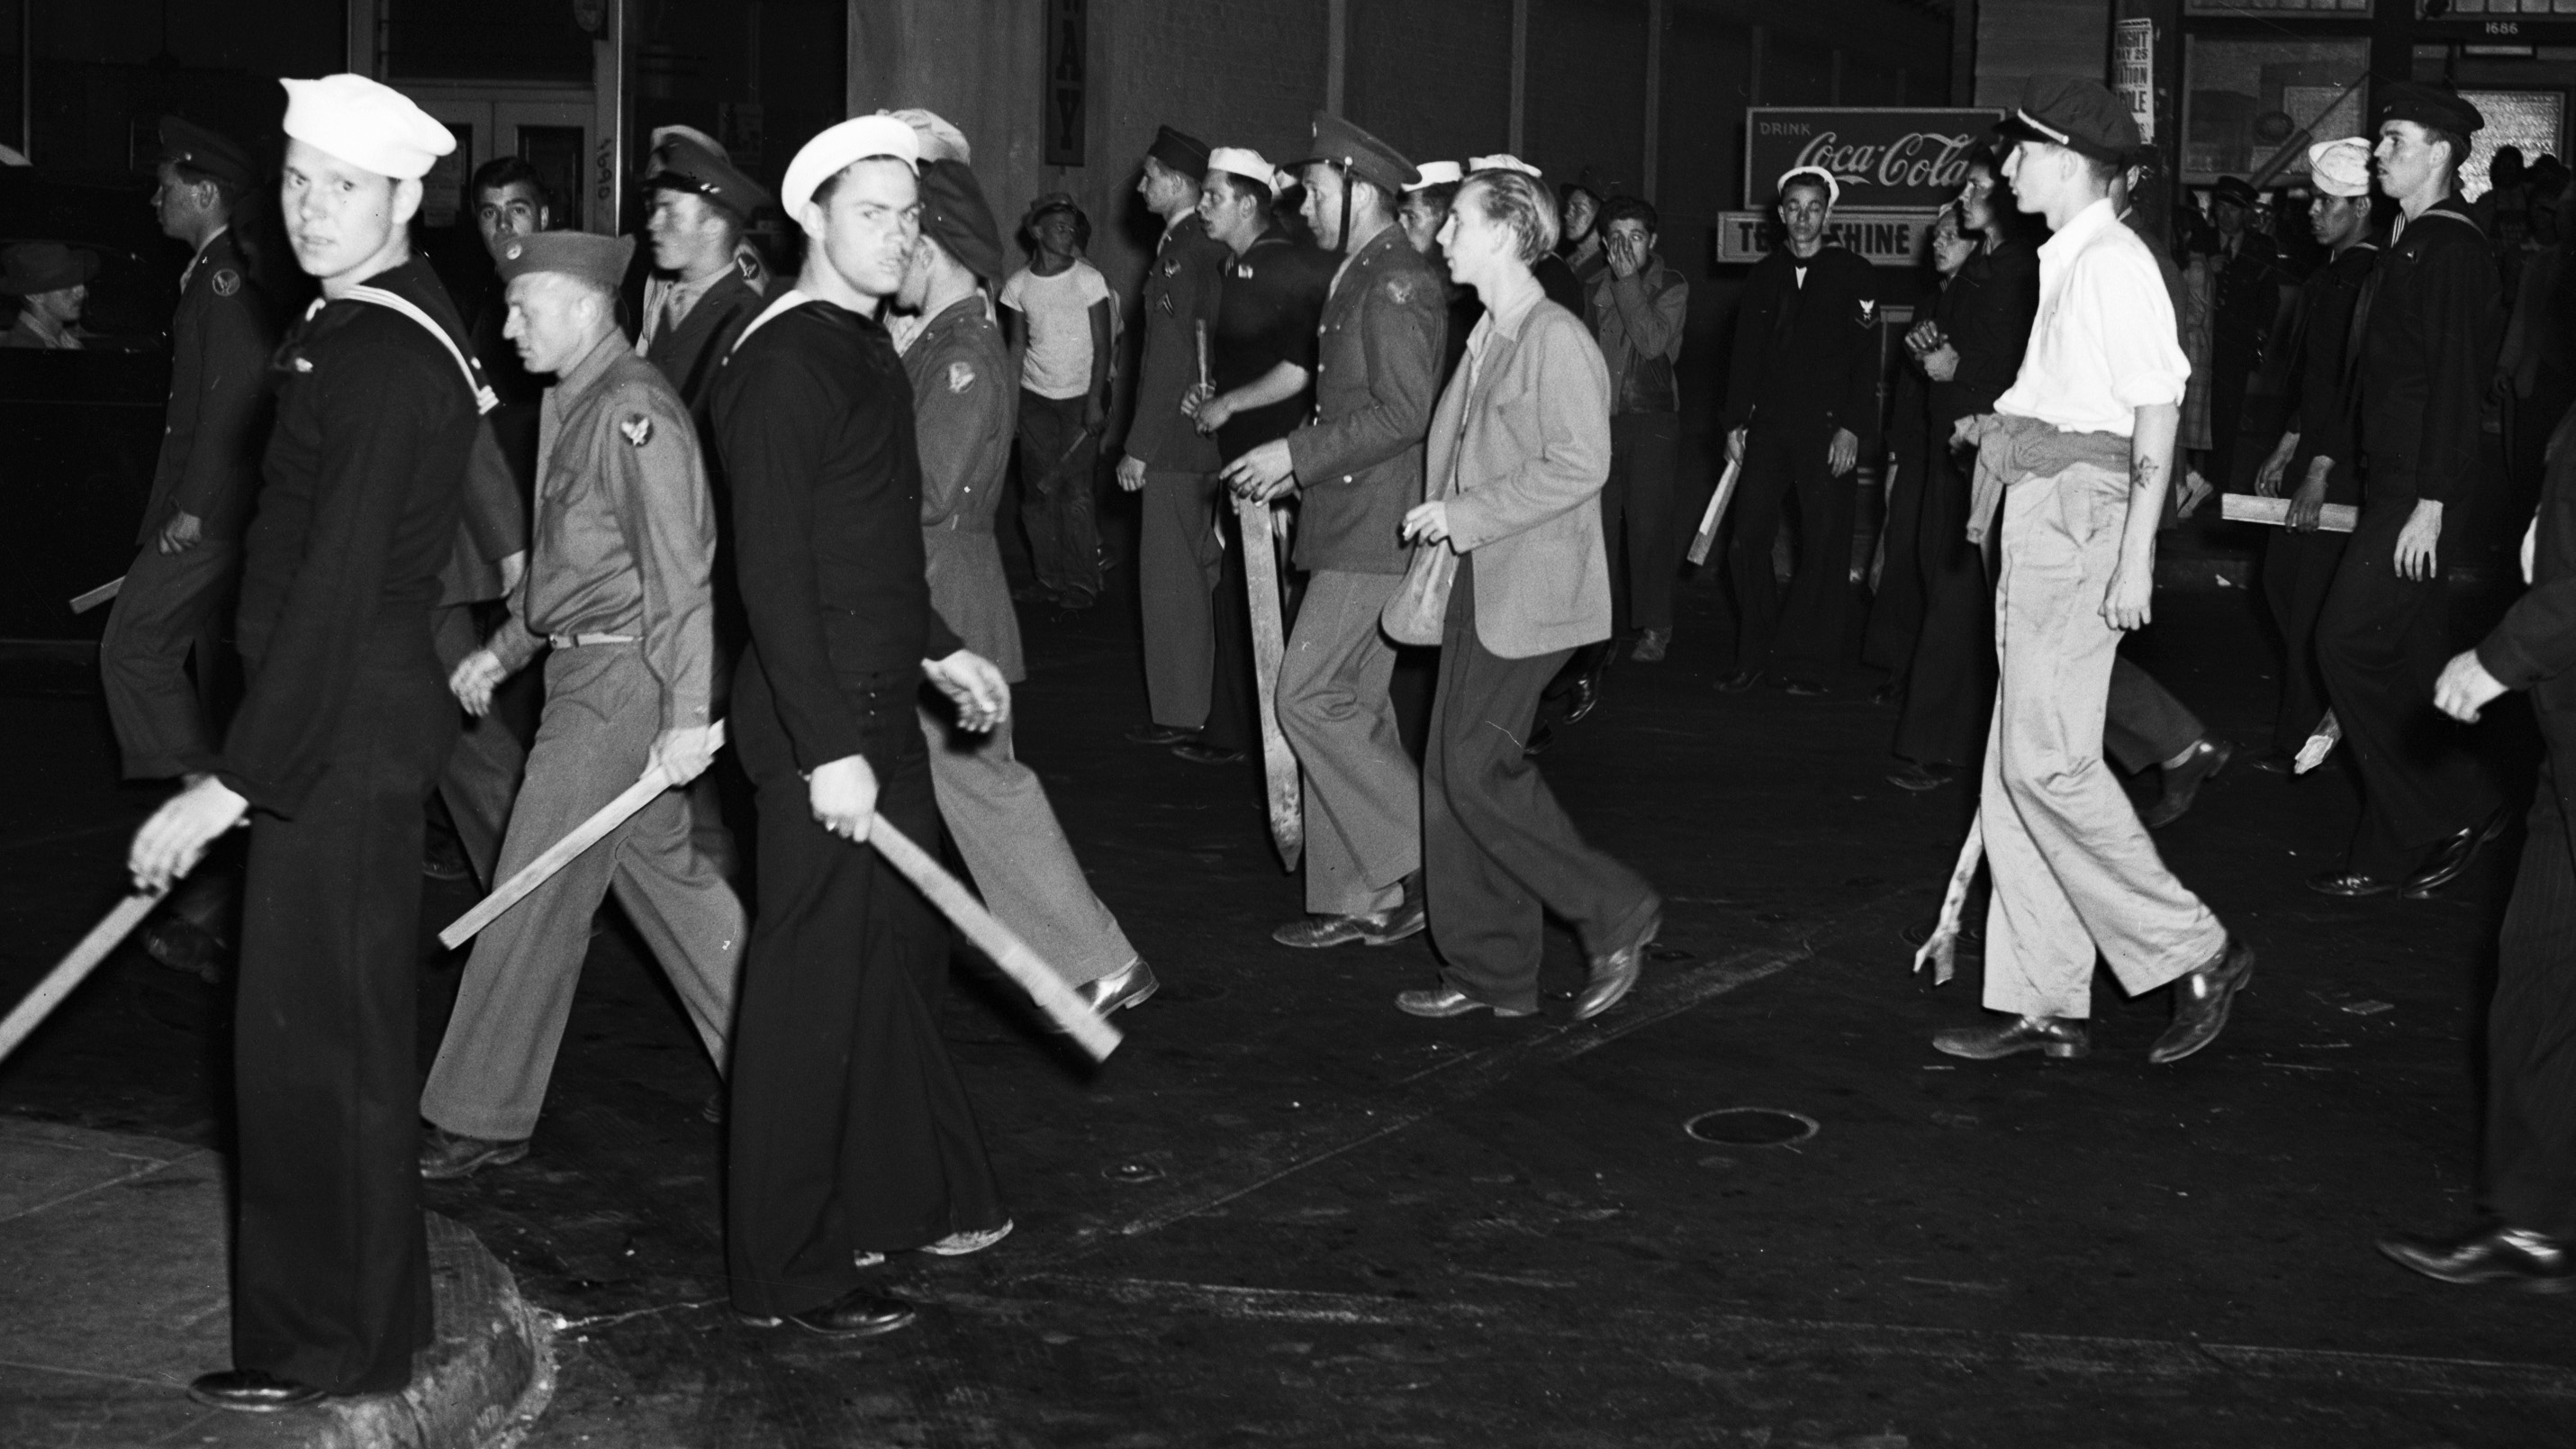 Armed with clubs, pipes and bottles, this self-appointed posse of uniformed men was all set to settle the Zoot Suit War when the Navy Shore Patrol stepped in and broke it up. (Credit: Bettmann/Getty Images)